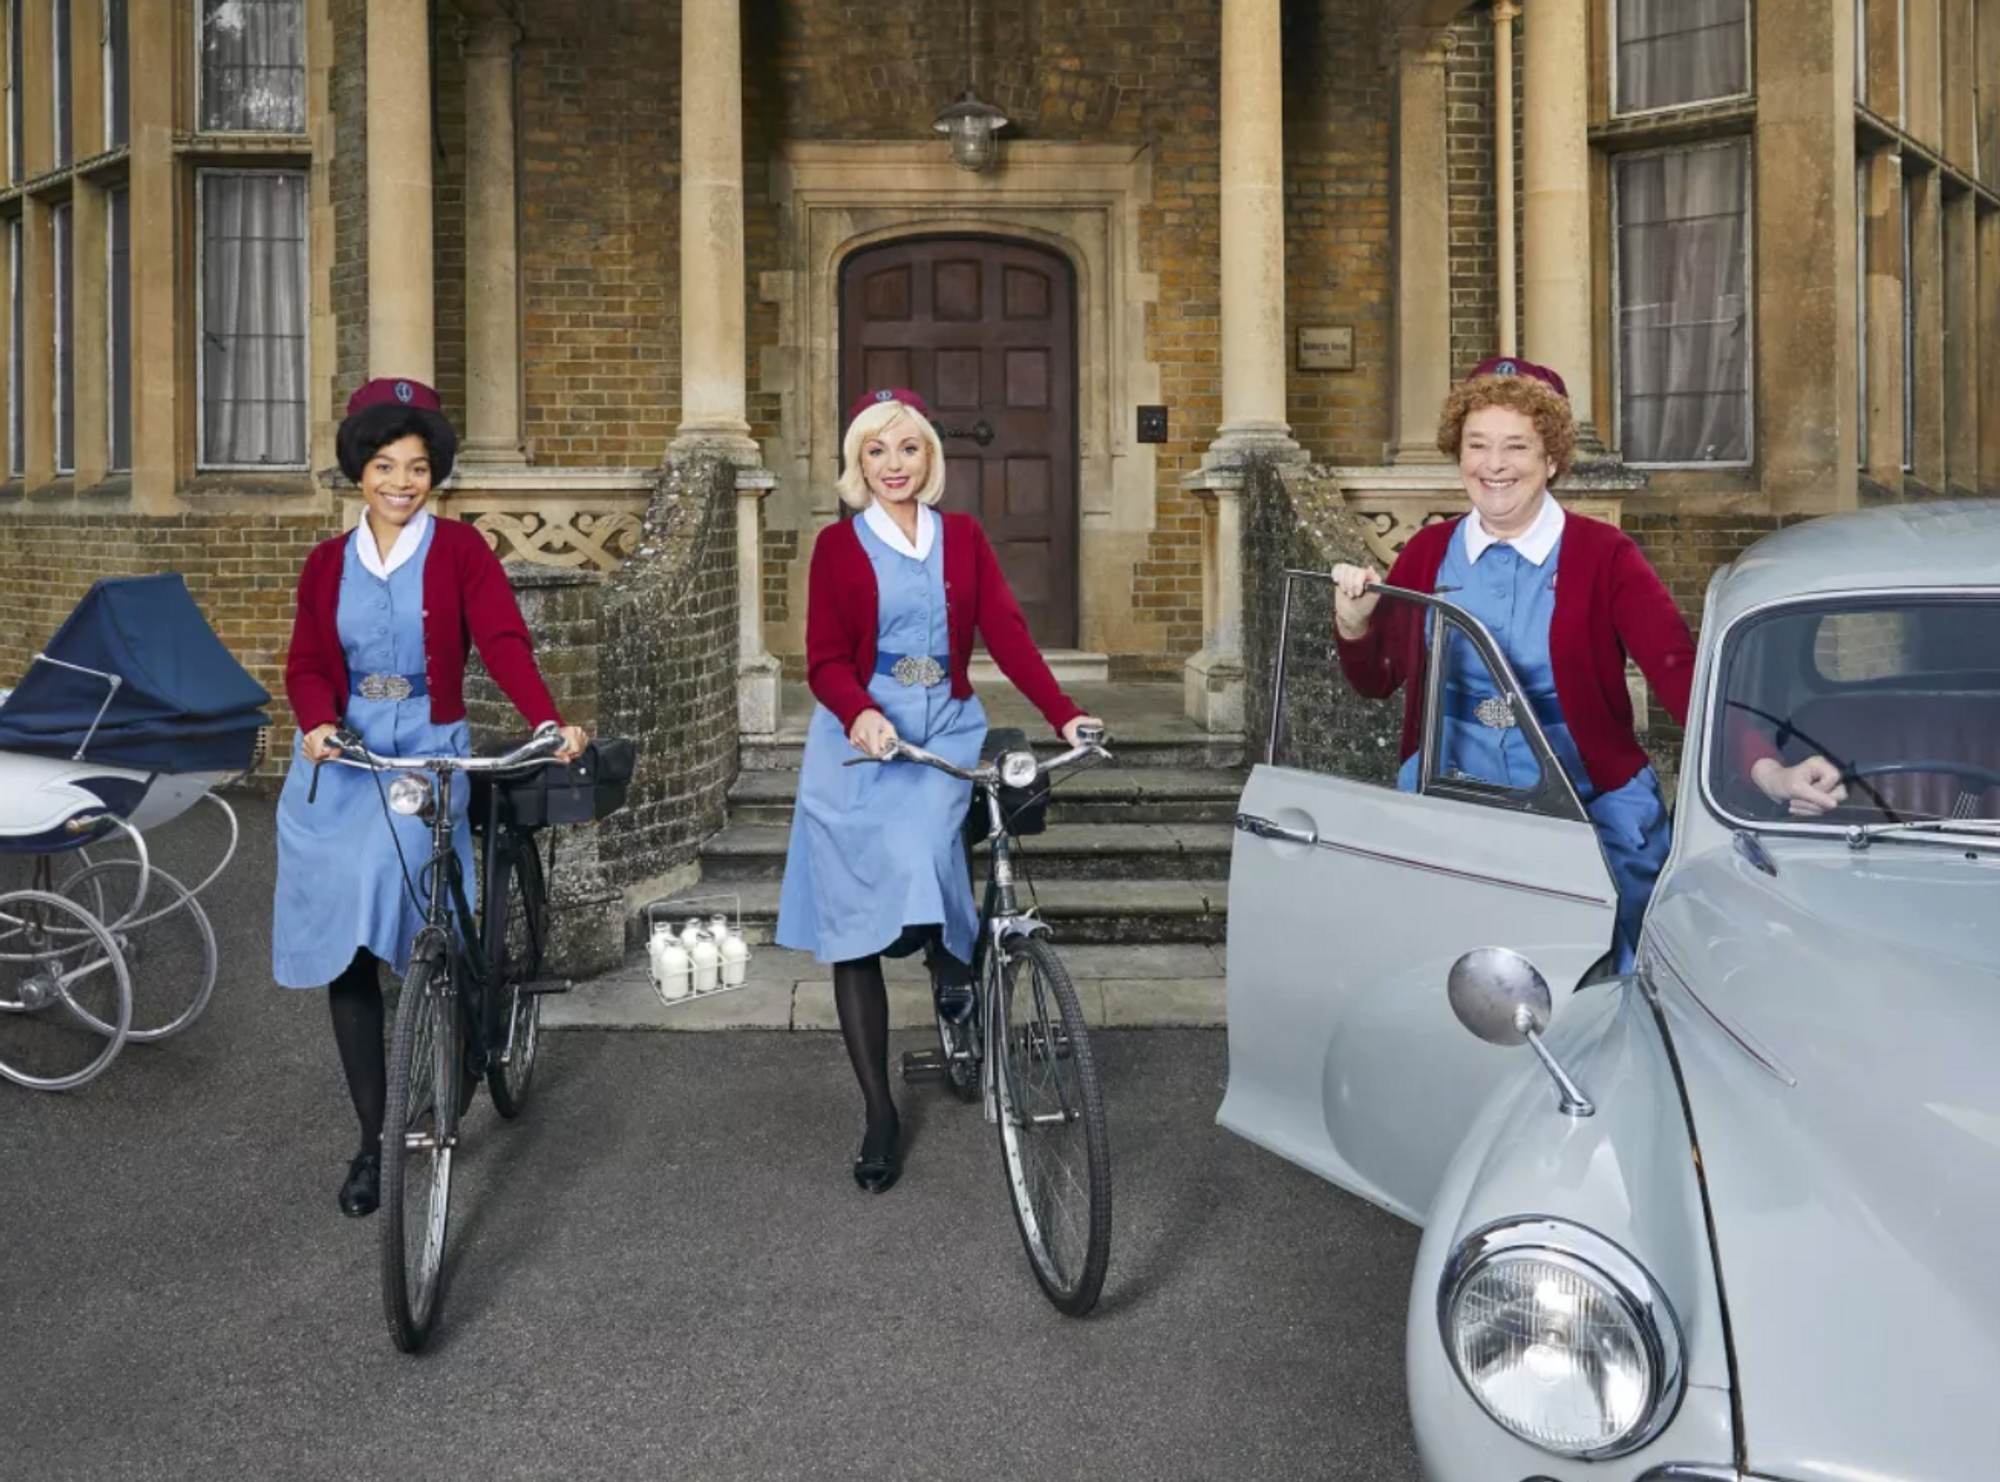 How to Watch Call The Midwife on Netflix Canada - Best VPNs To Use